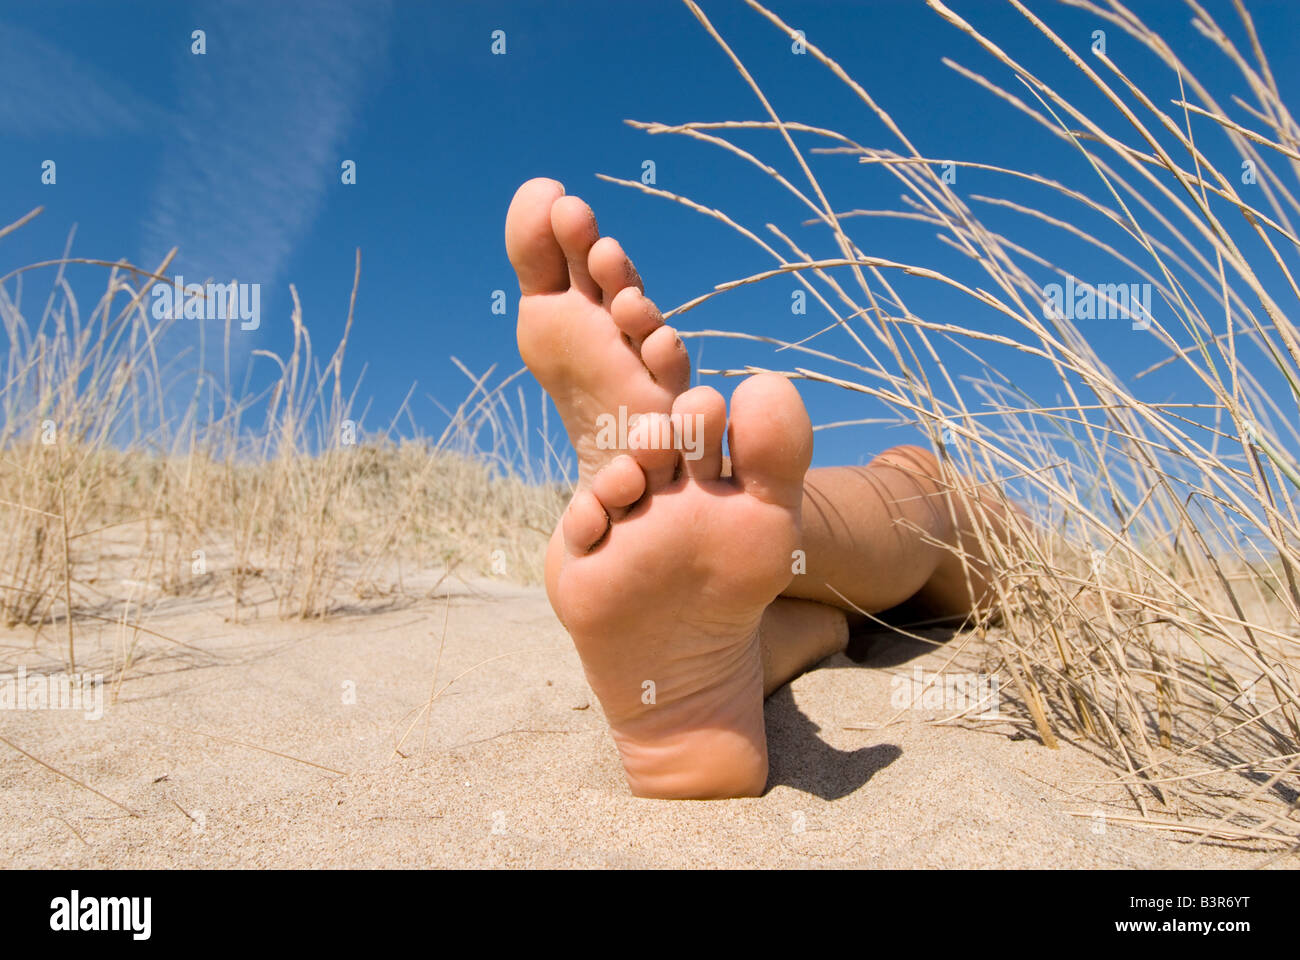 Model Released female feet lying in sand dunes with blue sky - Stock Image